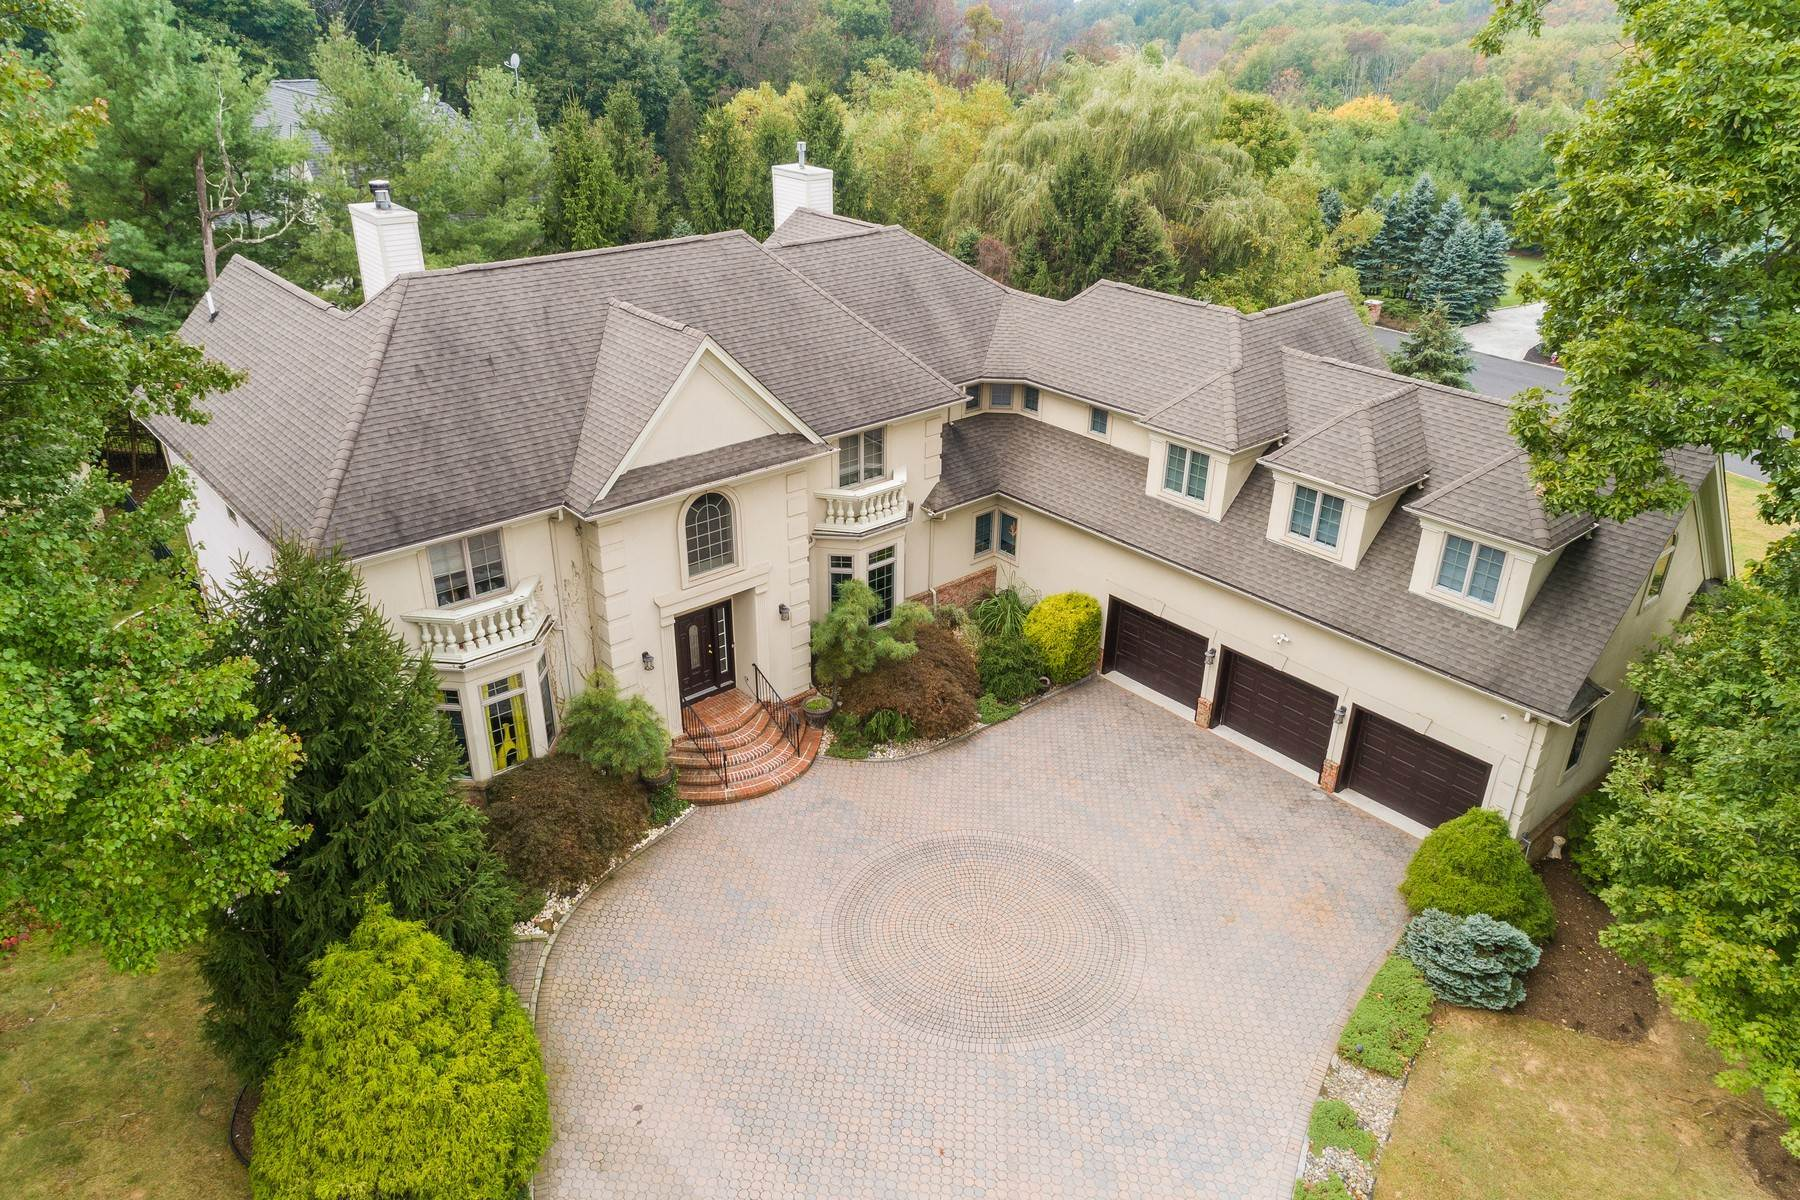 Single Family Homes for Sale at Stunning Custom Colonial 20 Watchung Crest Drive Watchung, New Jersey 07069 United States